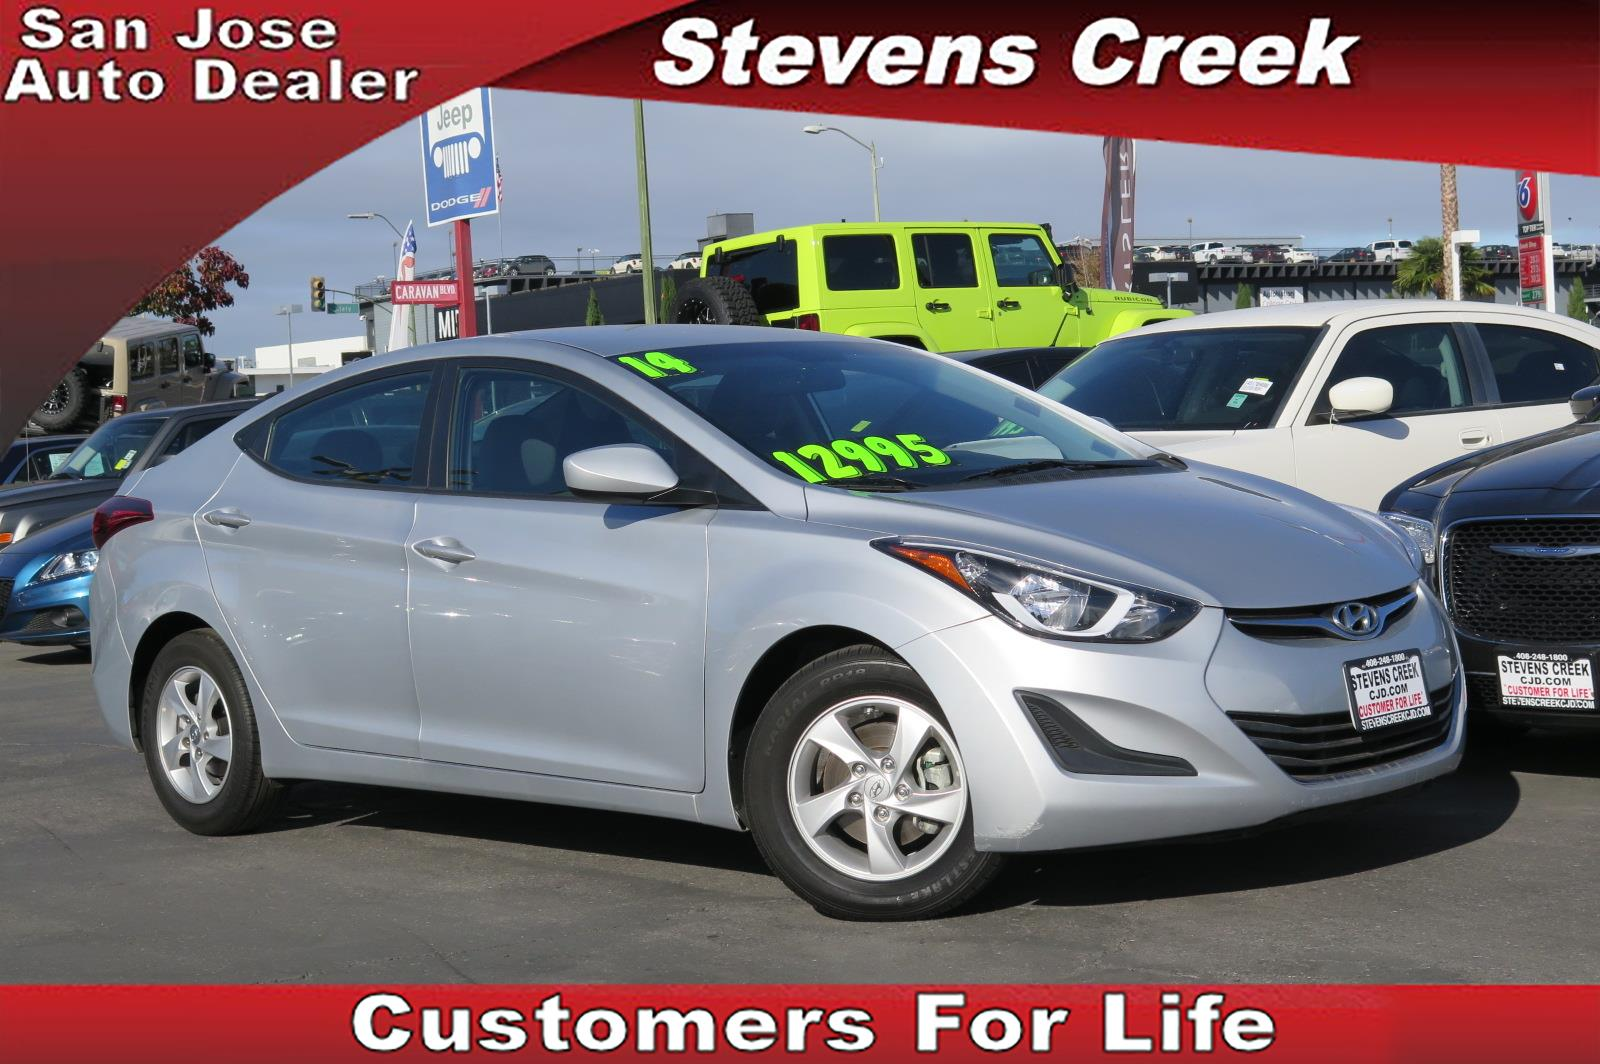 2014 HYUNDAI ELANTRA SE silver 4-cyl 18 liter automatic fwd  folding side mirrors  power win